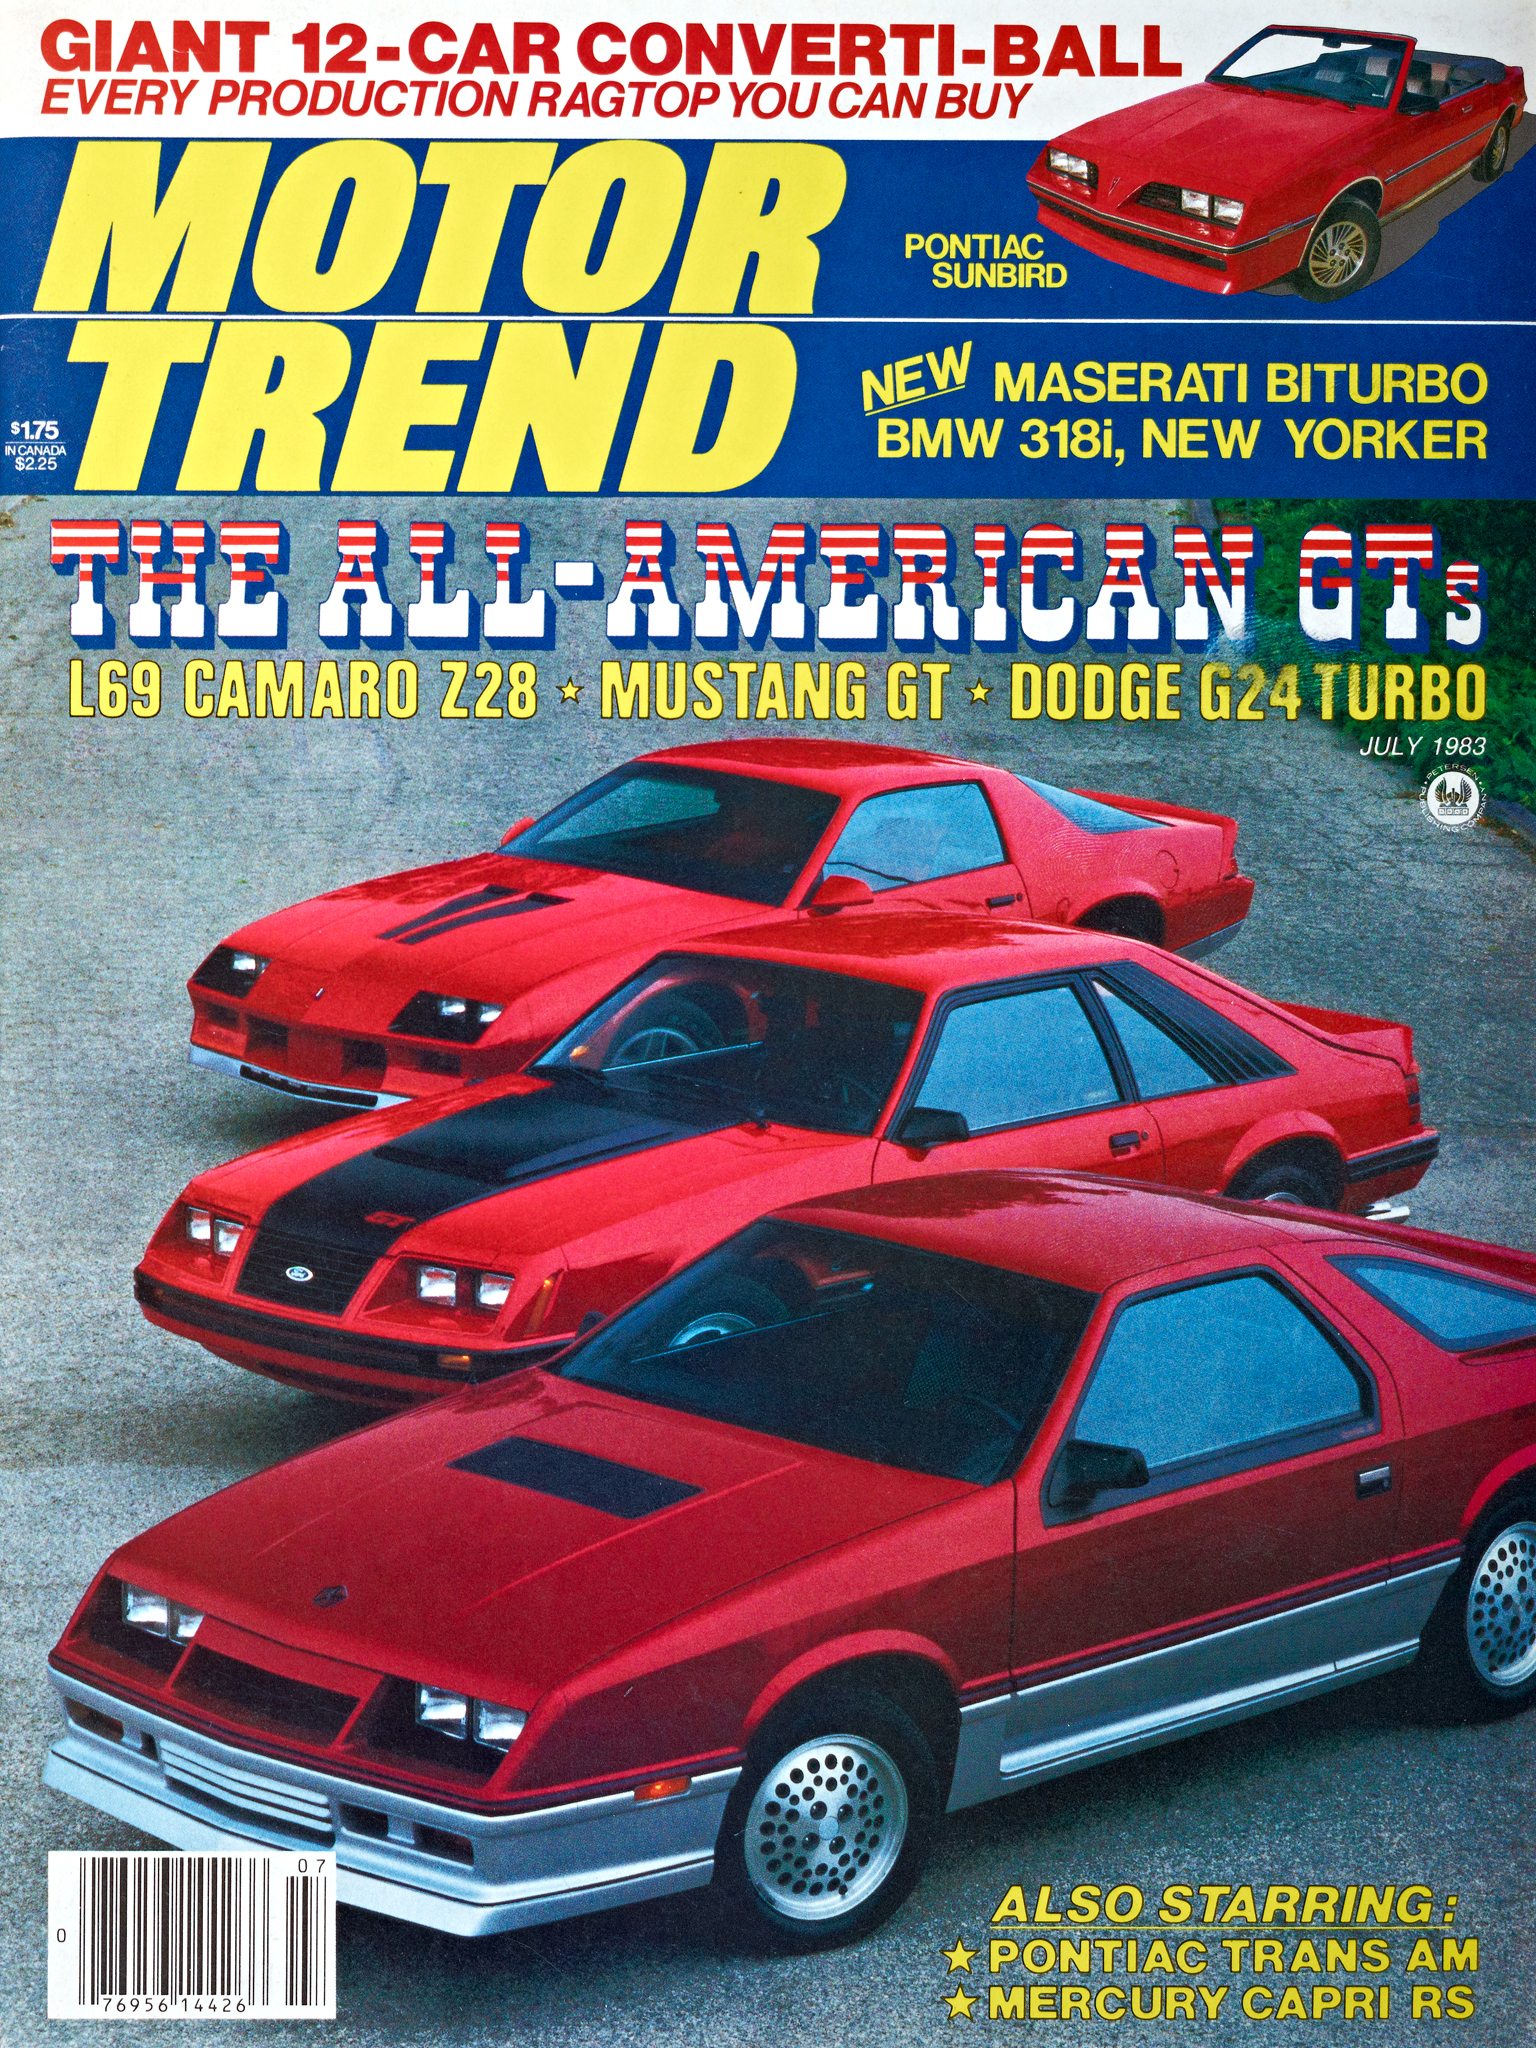 Article Covered Ford Mustang Motor Trend Covers From 1964 Present 1983 Gt Engine Overstockcom Cars